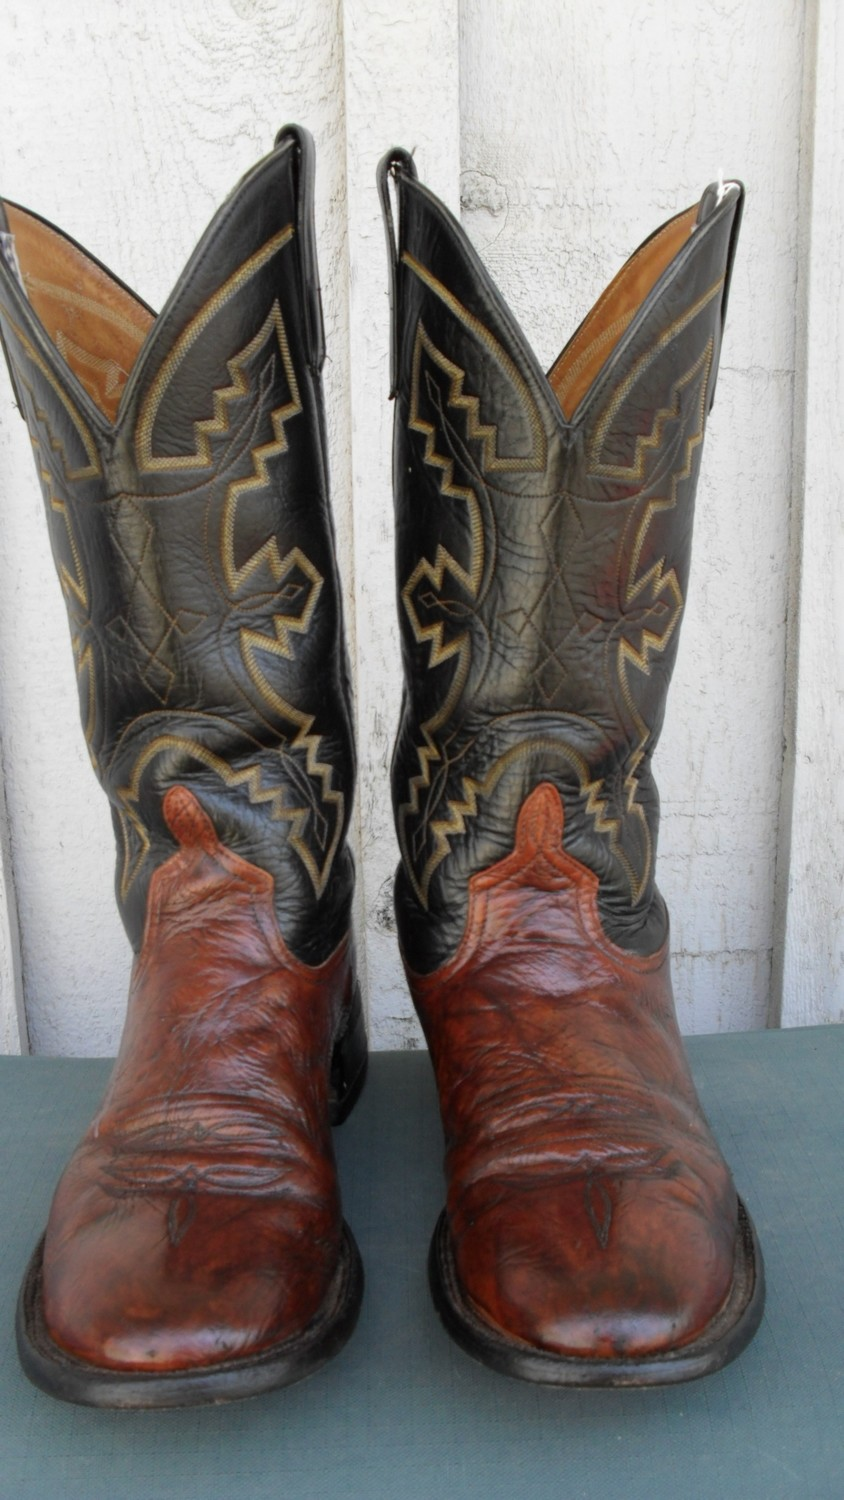 Anderson Bean boots with a rich color combination!